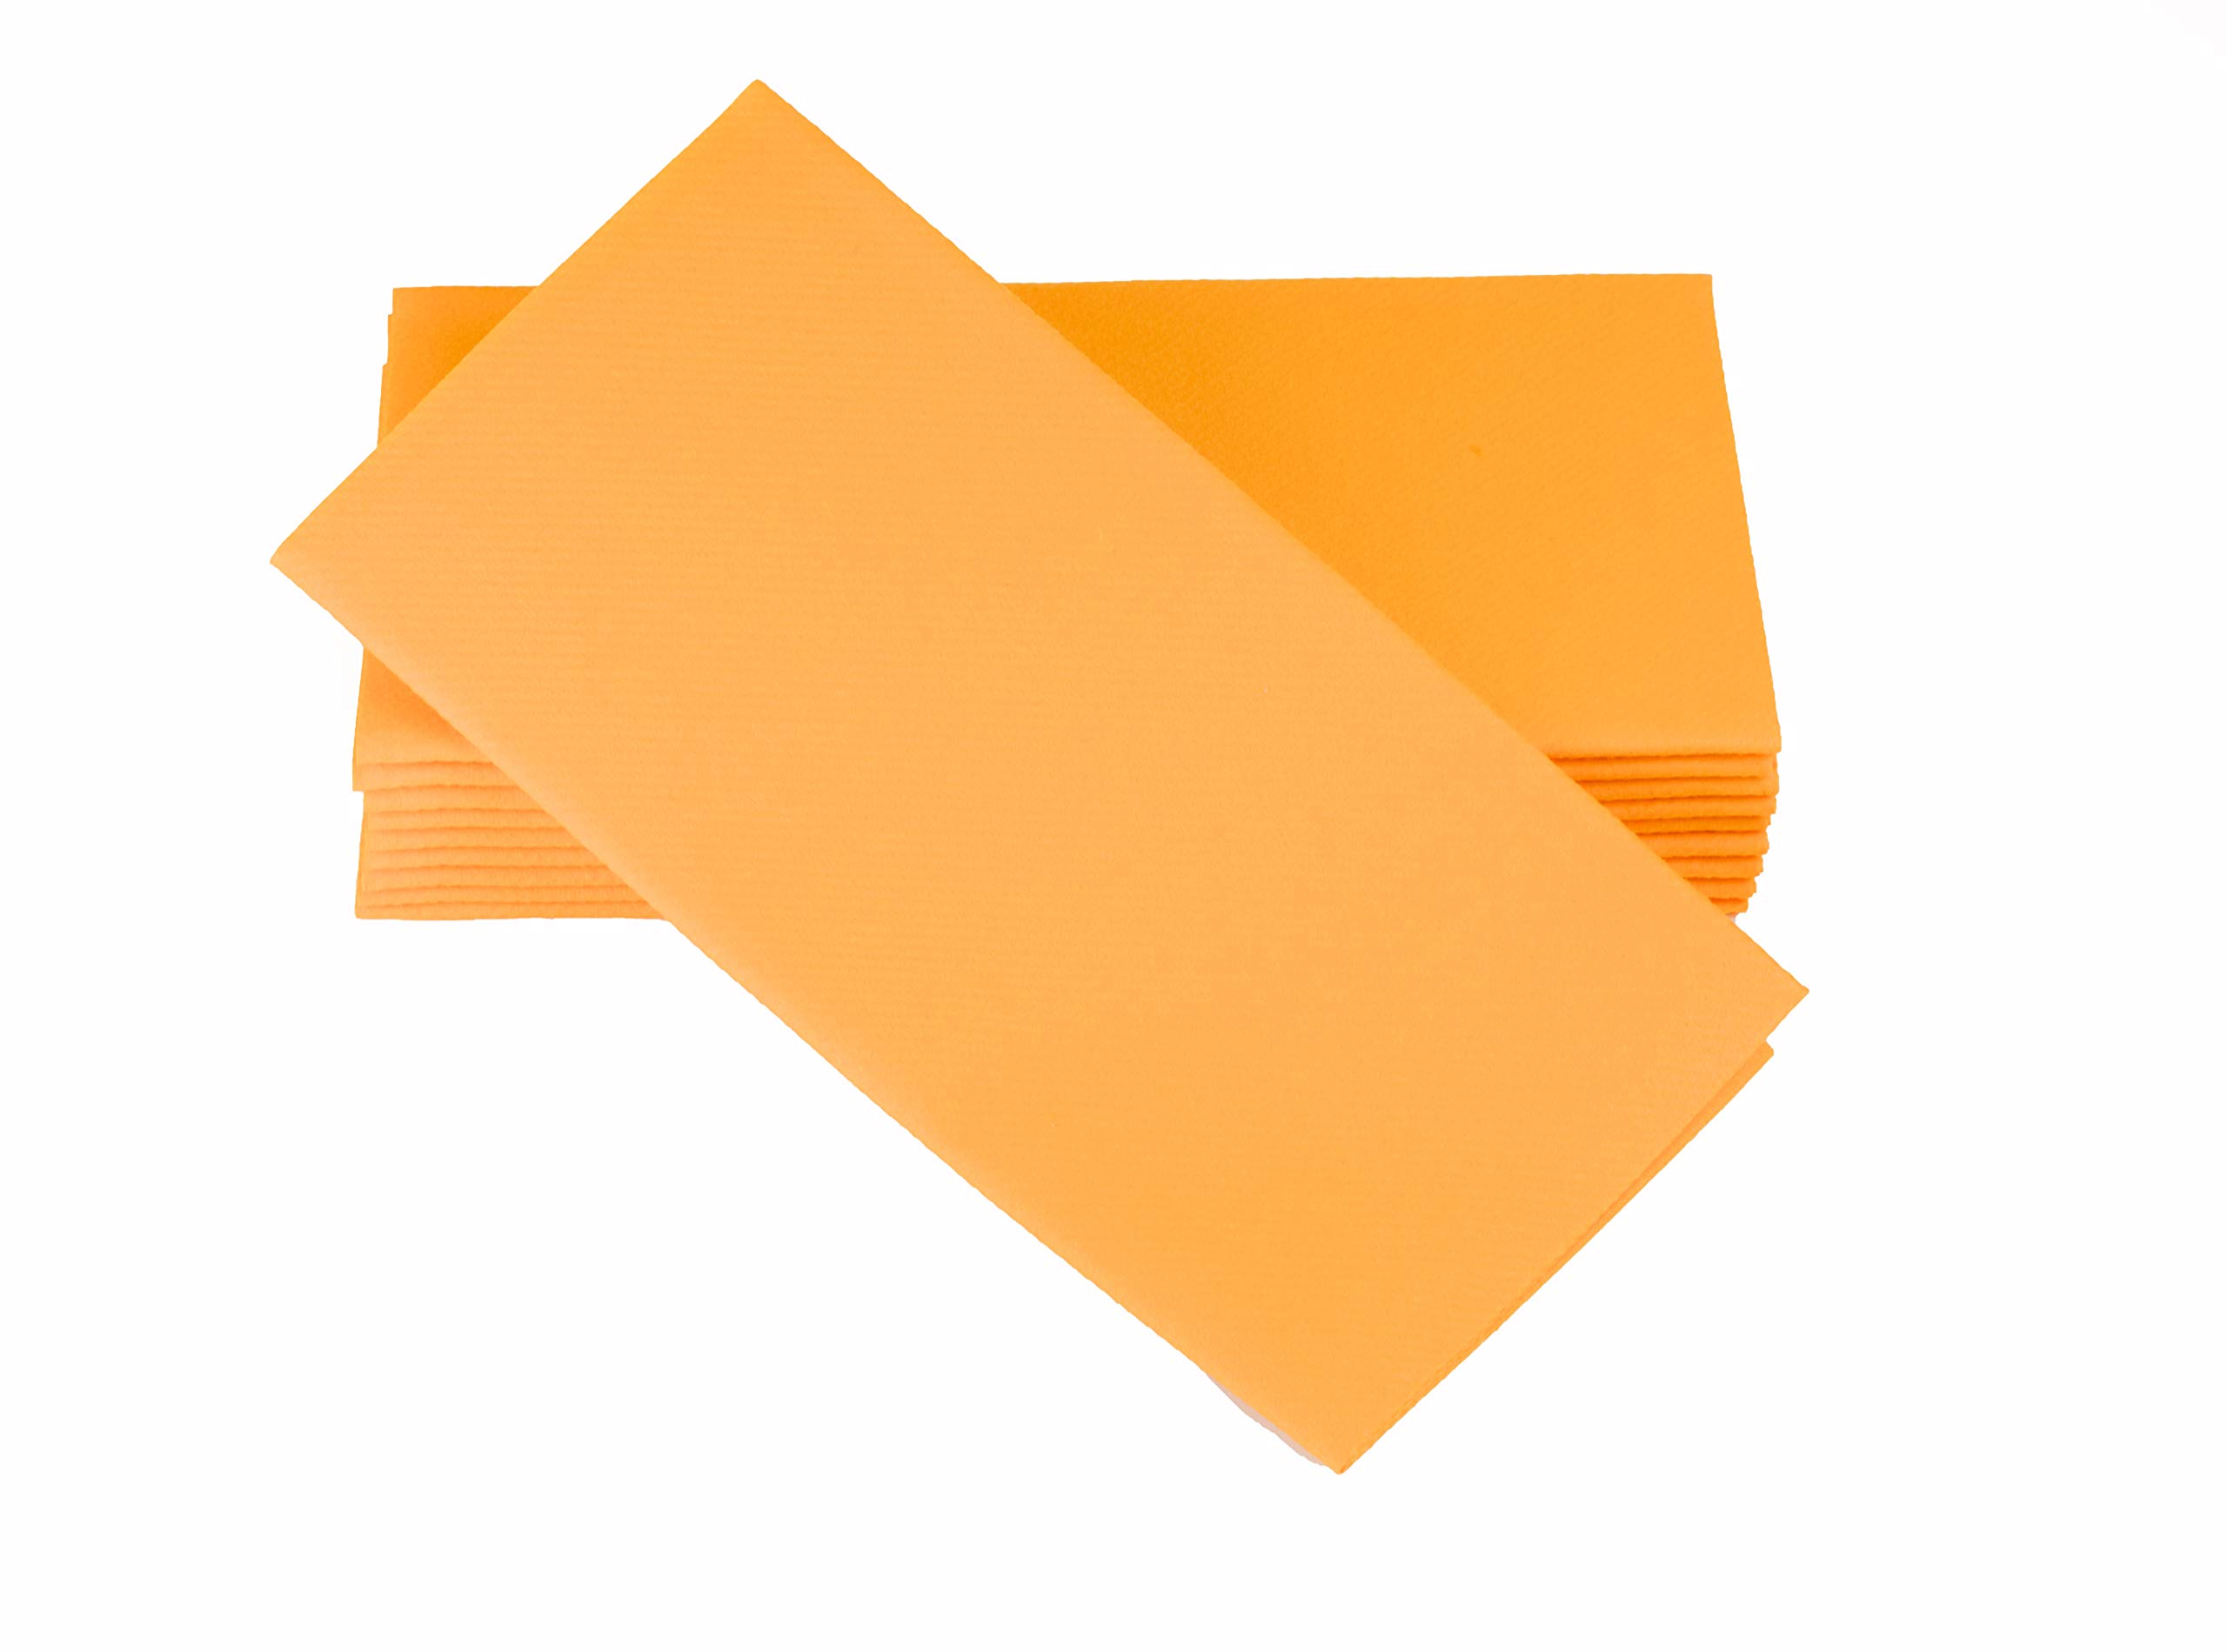 """Simulinen Colored Napkins - Decorative Cloth Like & Disposable, Dinner Napkins - Orange - Soft, Absorbent & Durable - 16""""x16"""" - Great for Any Occasion! - Box of 50"""